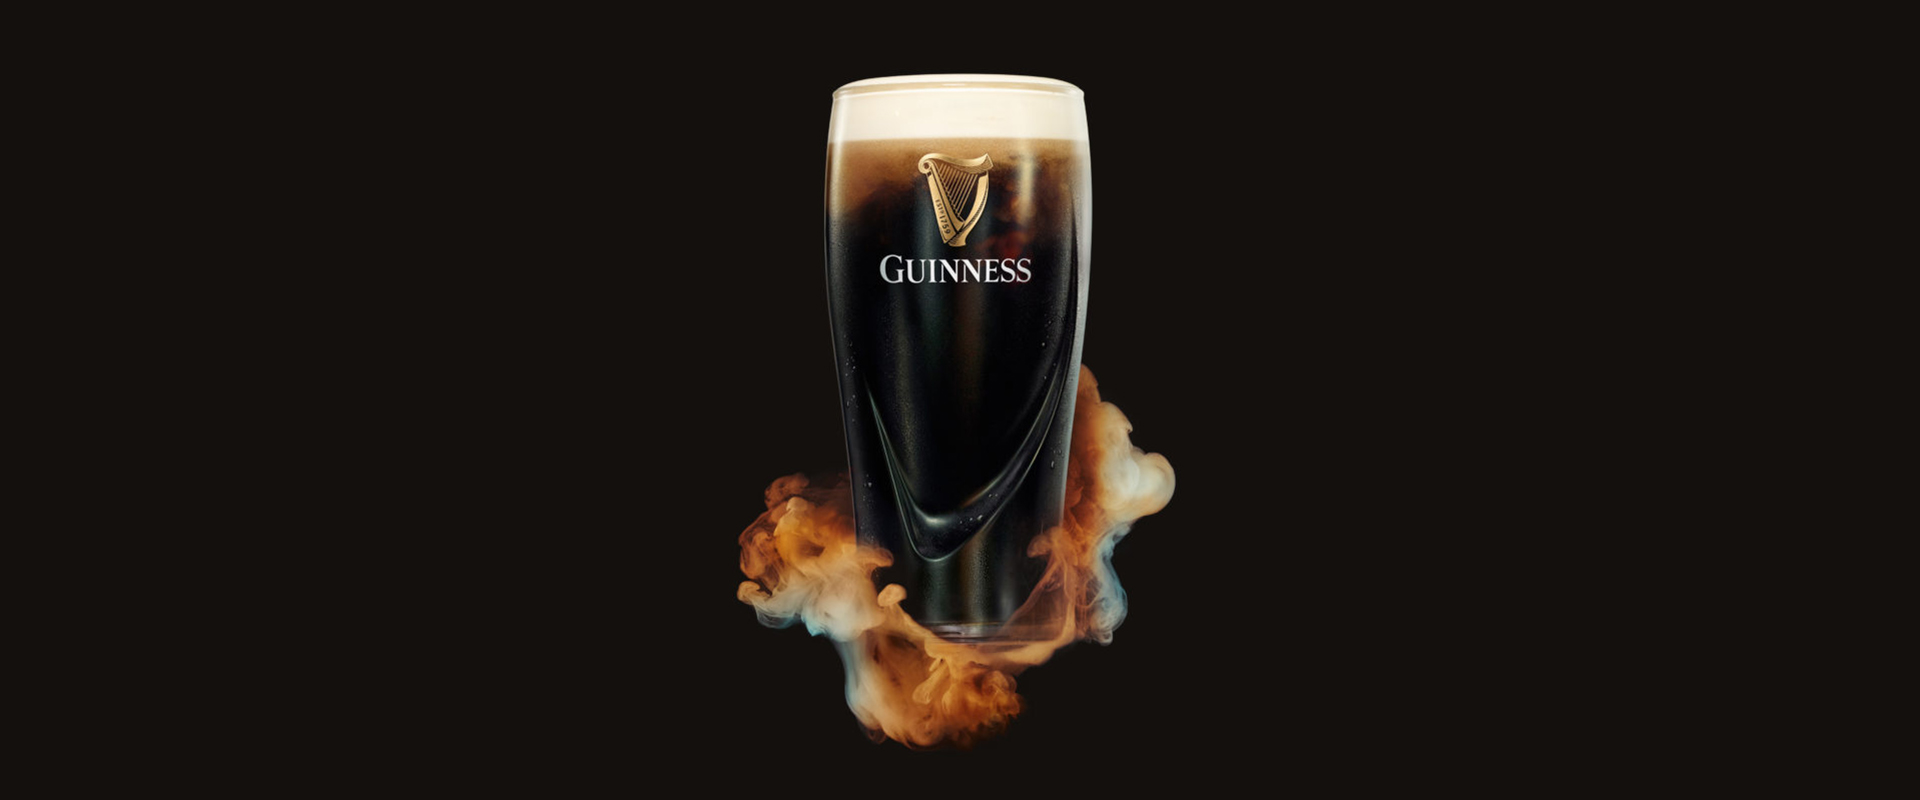 Guinness - The surge pint glass - beer - stout - head - guinness logo - pour guinness